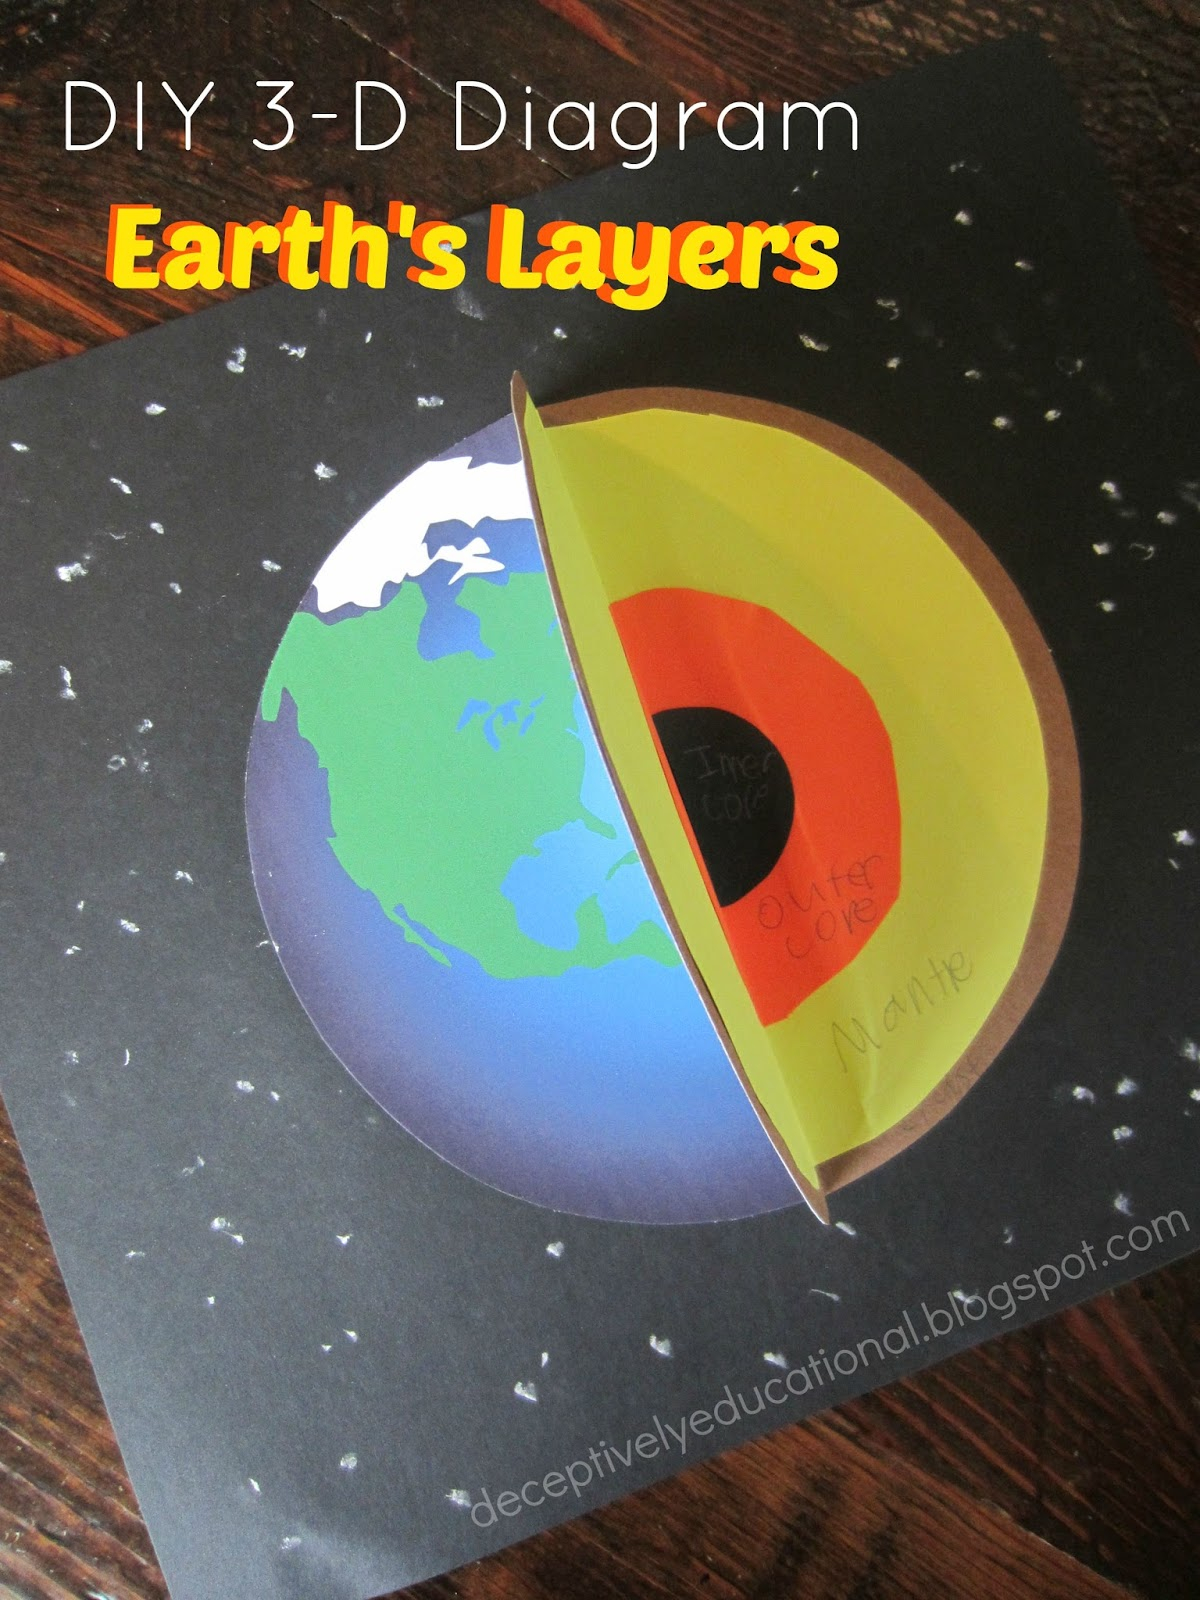 Diagram Of The Earth's Layers Relentlessly Fun Deceptively Educational Earths Layers Diy 3 D